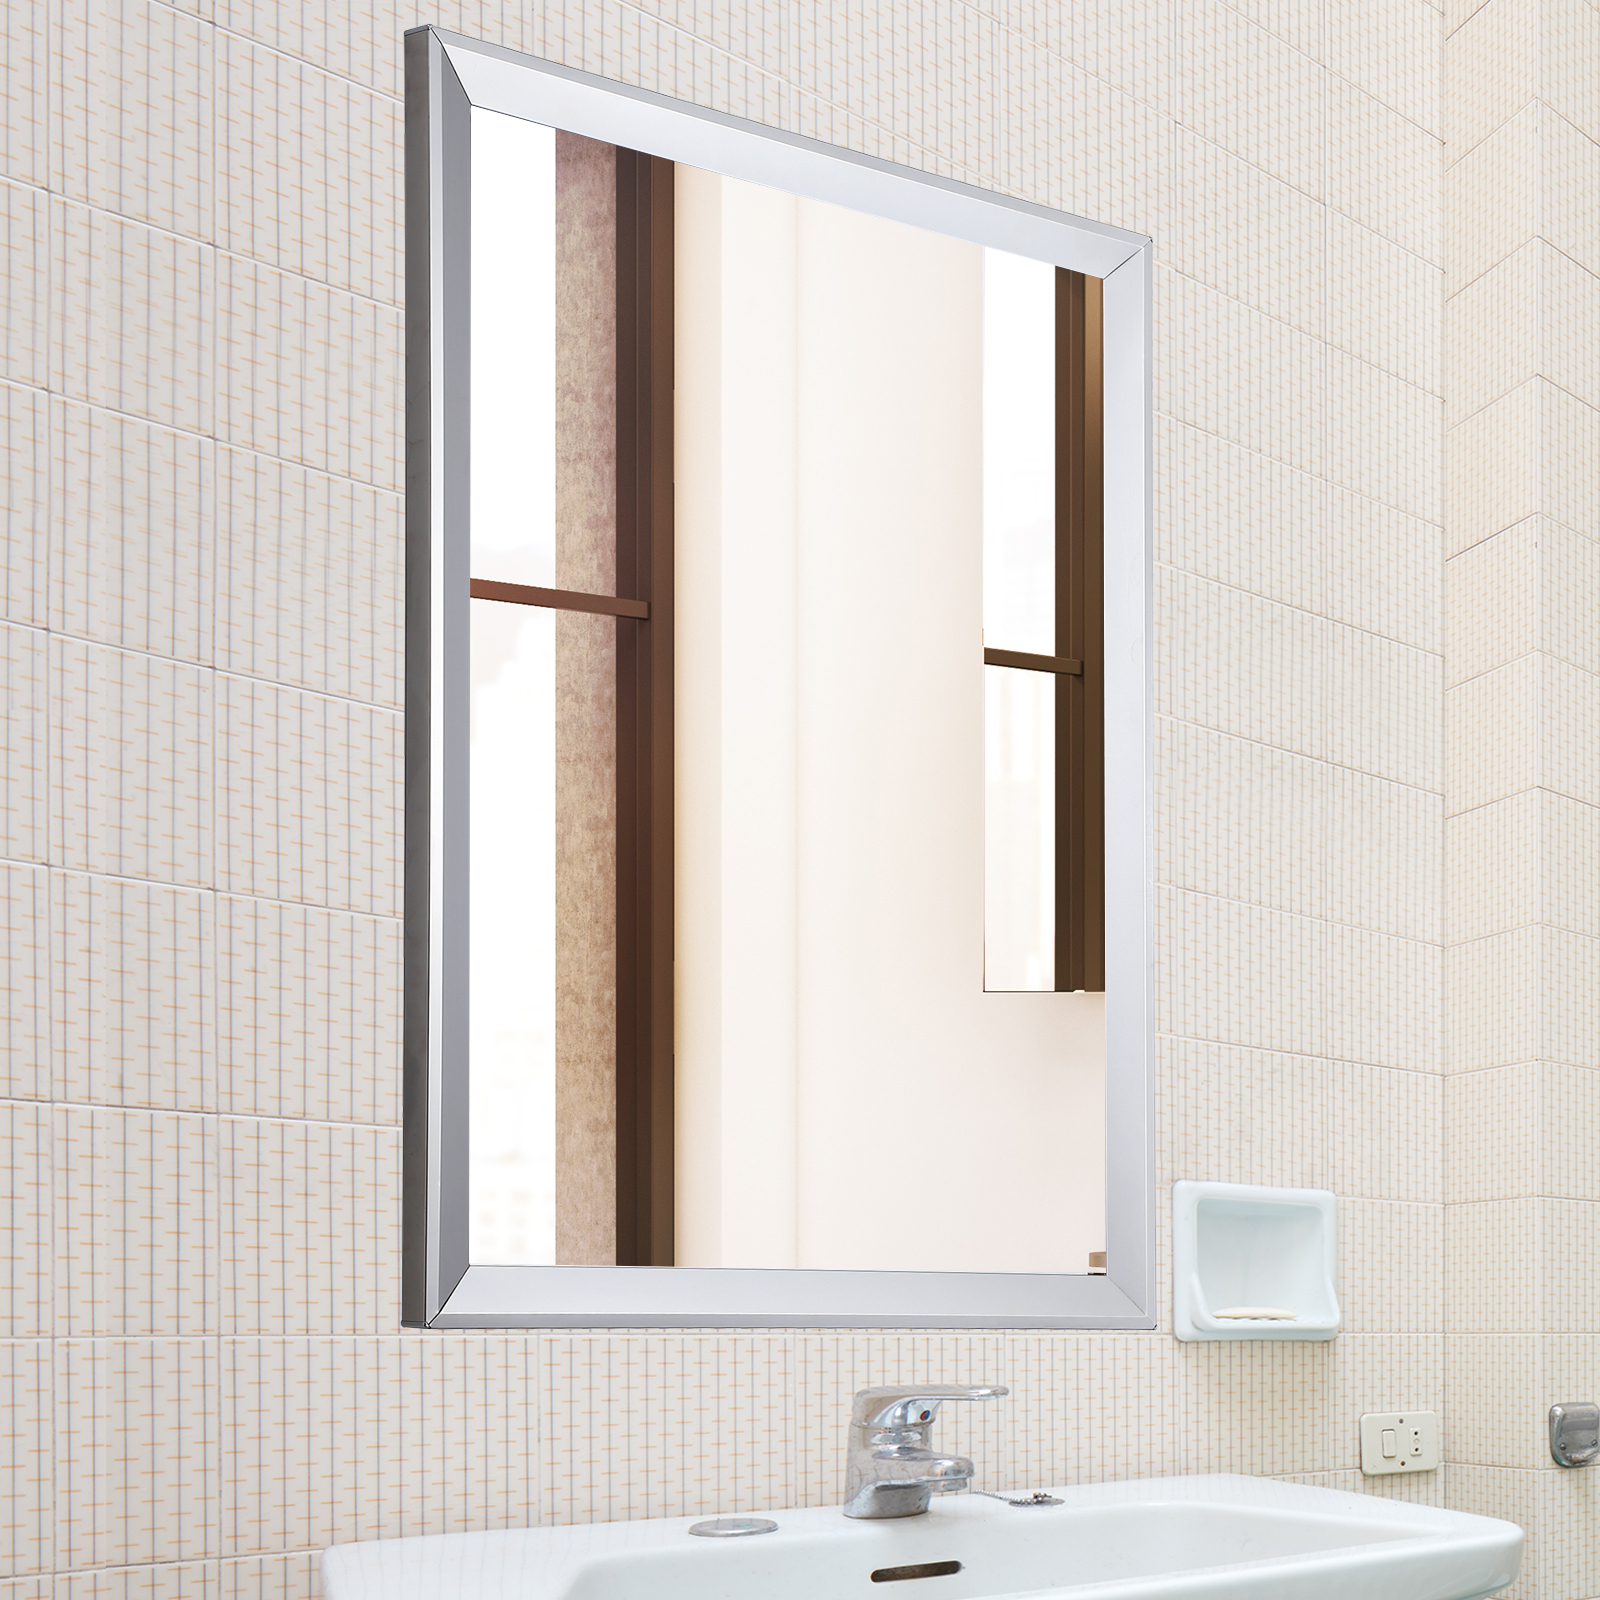 "Frame Bathroom Wall Mirrors Regarding Trendy Details About 24""x32"" Framed Bathroom Wall Mirror Rectangular Vanity Glass  Beveled Home Decor (View 10 of 20)"